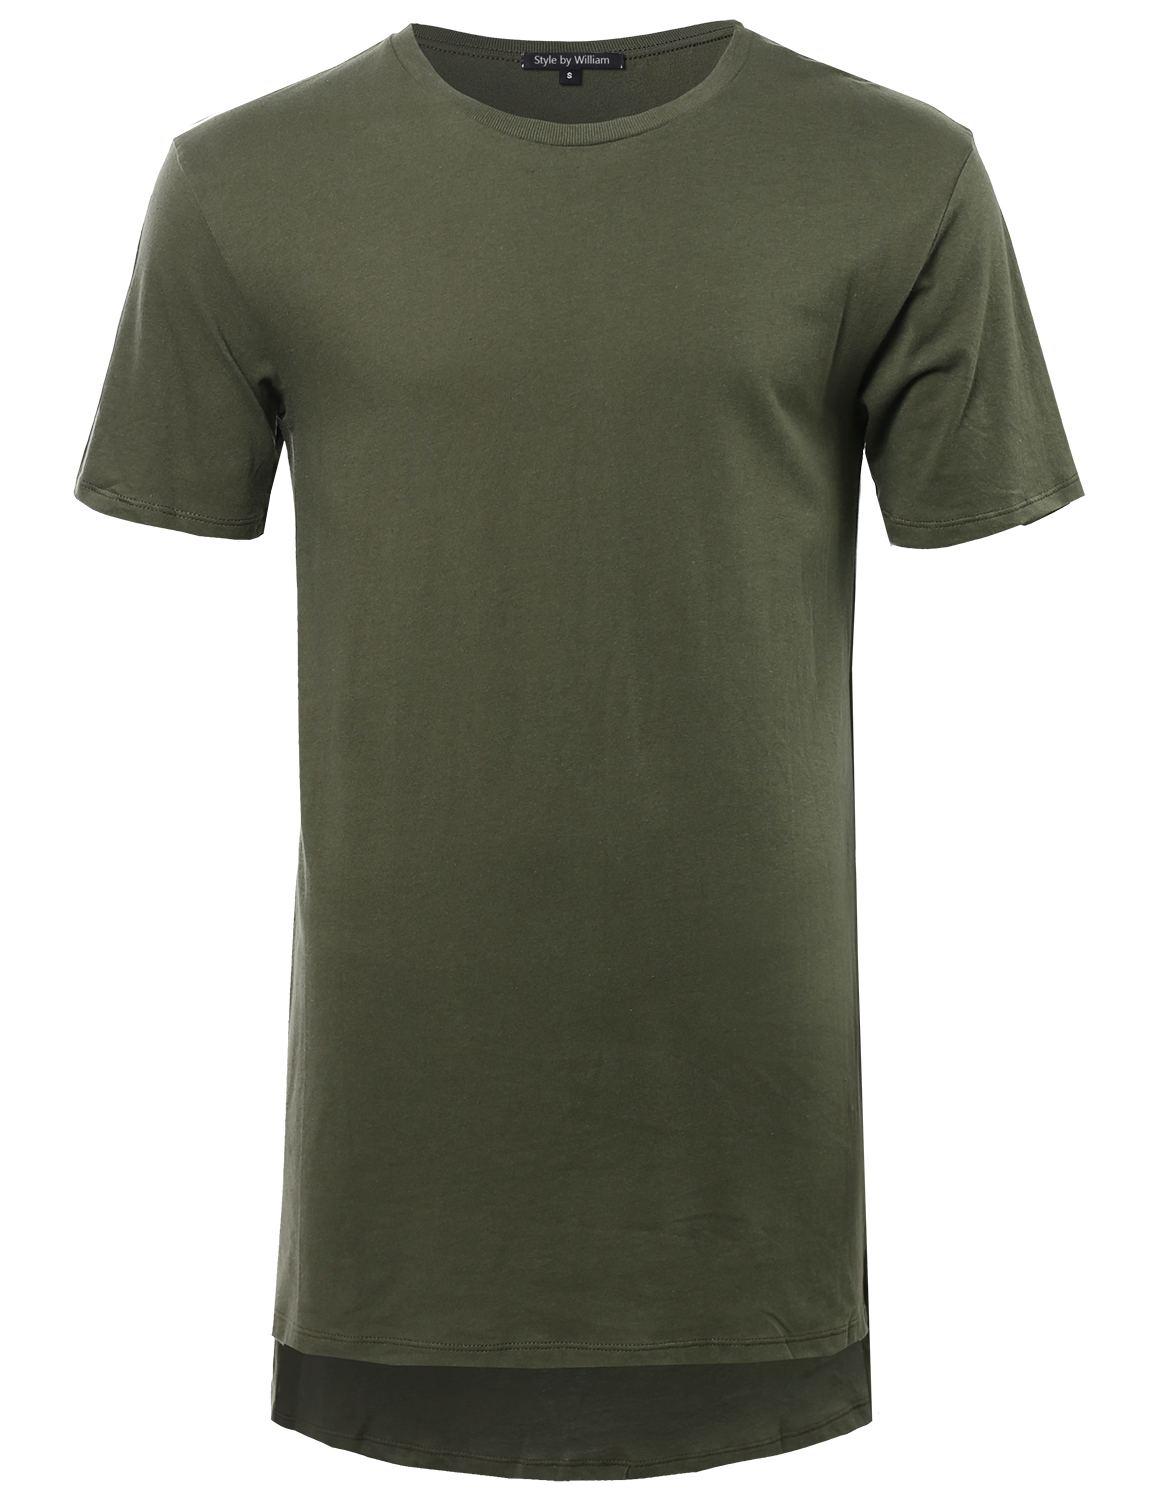 Fashionoutfit men 39 s basic solid high low long line short for Long line short sleeve t shirt